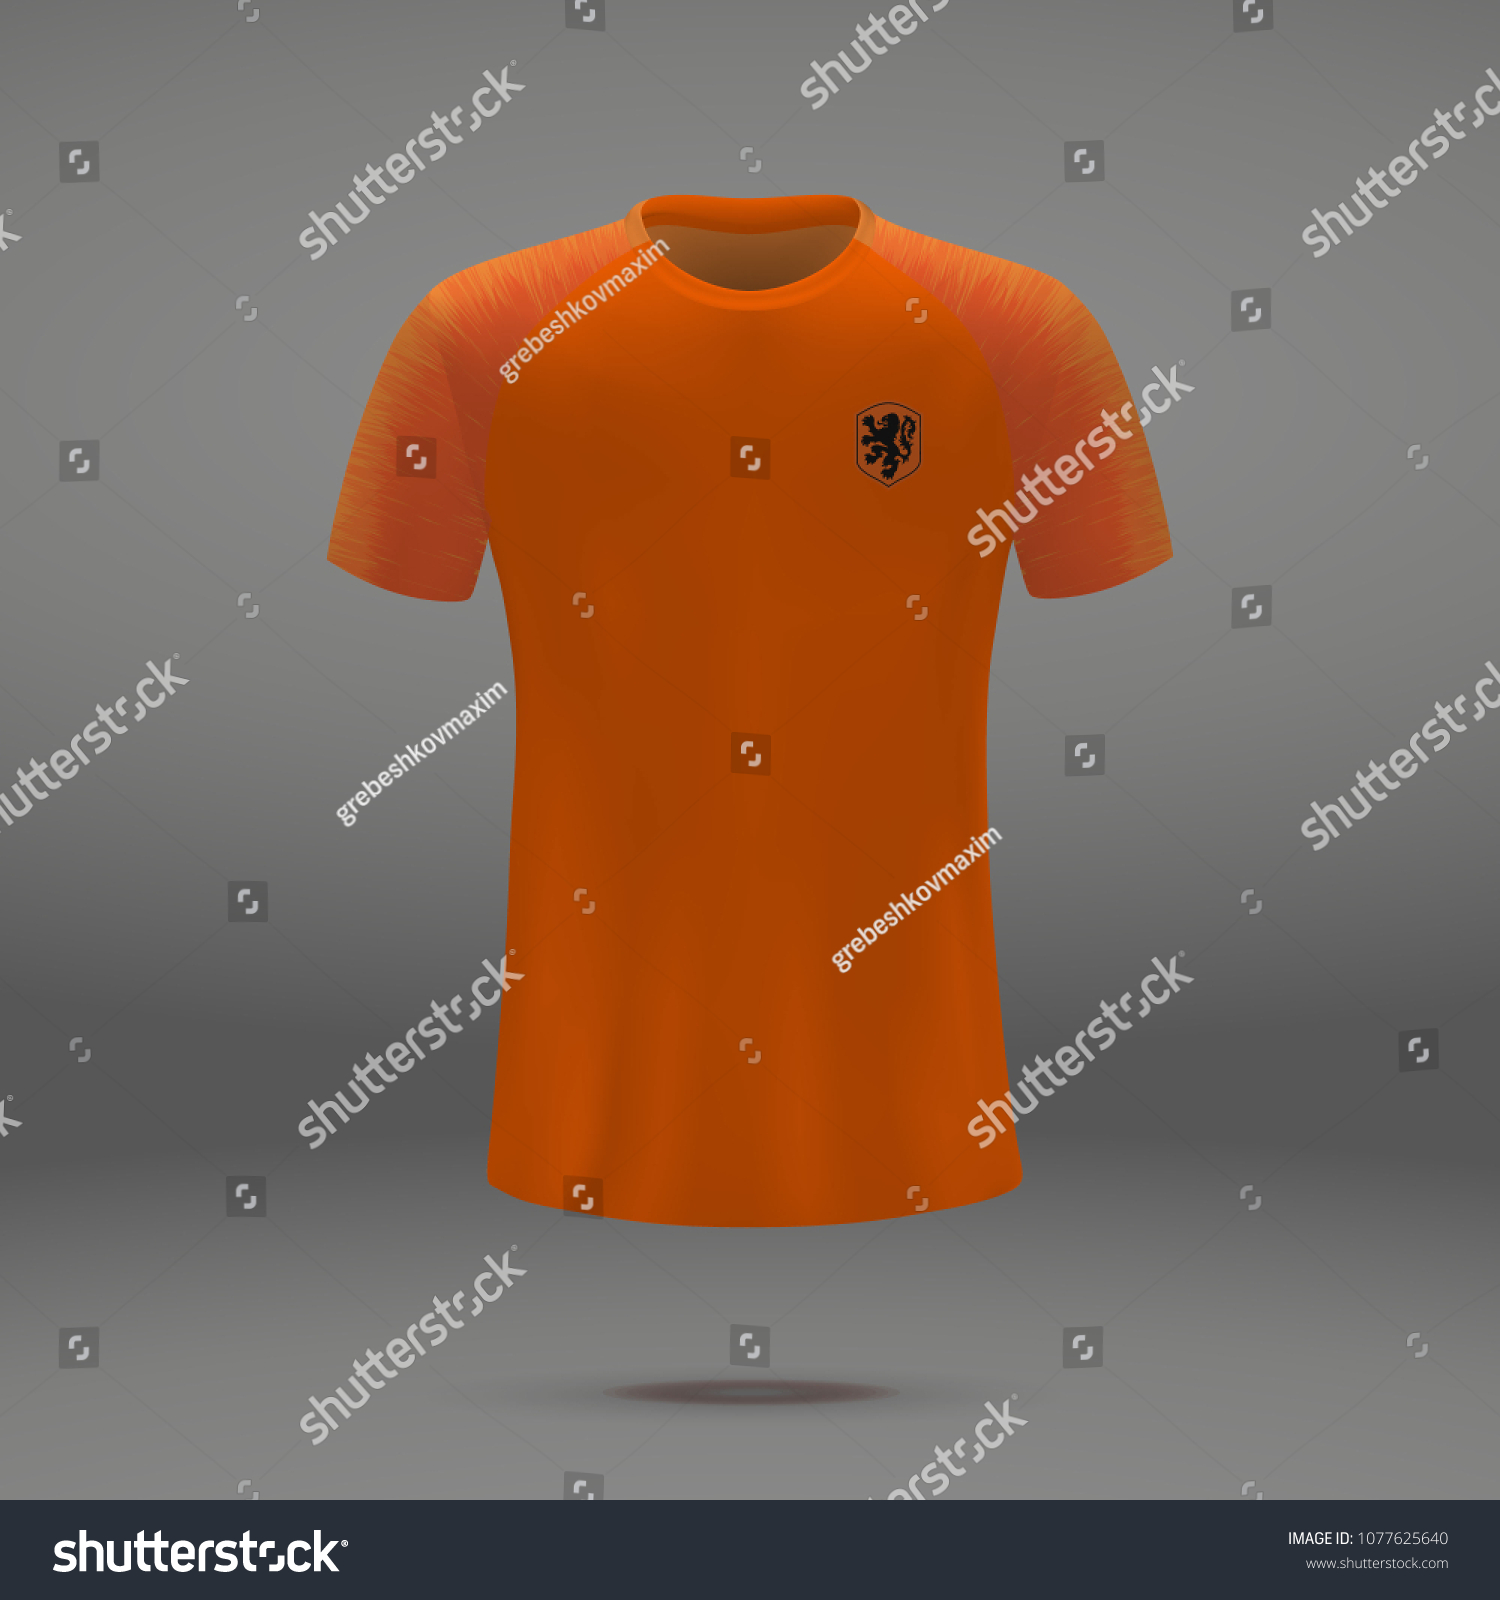 online store 85f06 638a9 Football Kit Netherlands 2018 Shirt Template Stock Vector ...